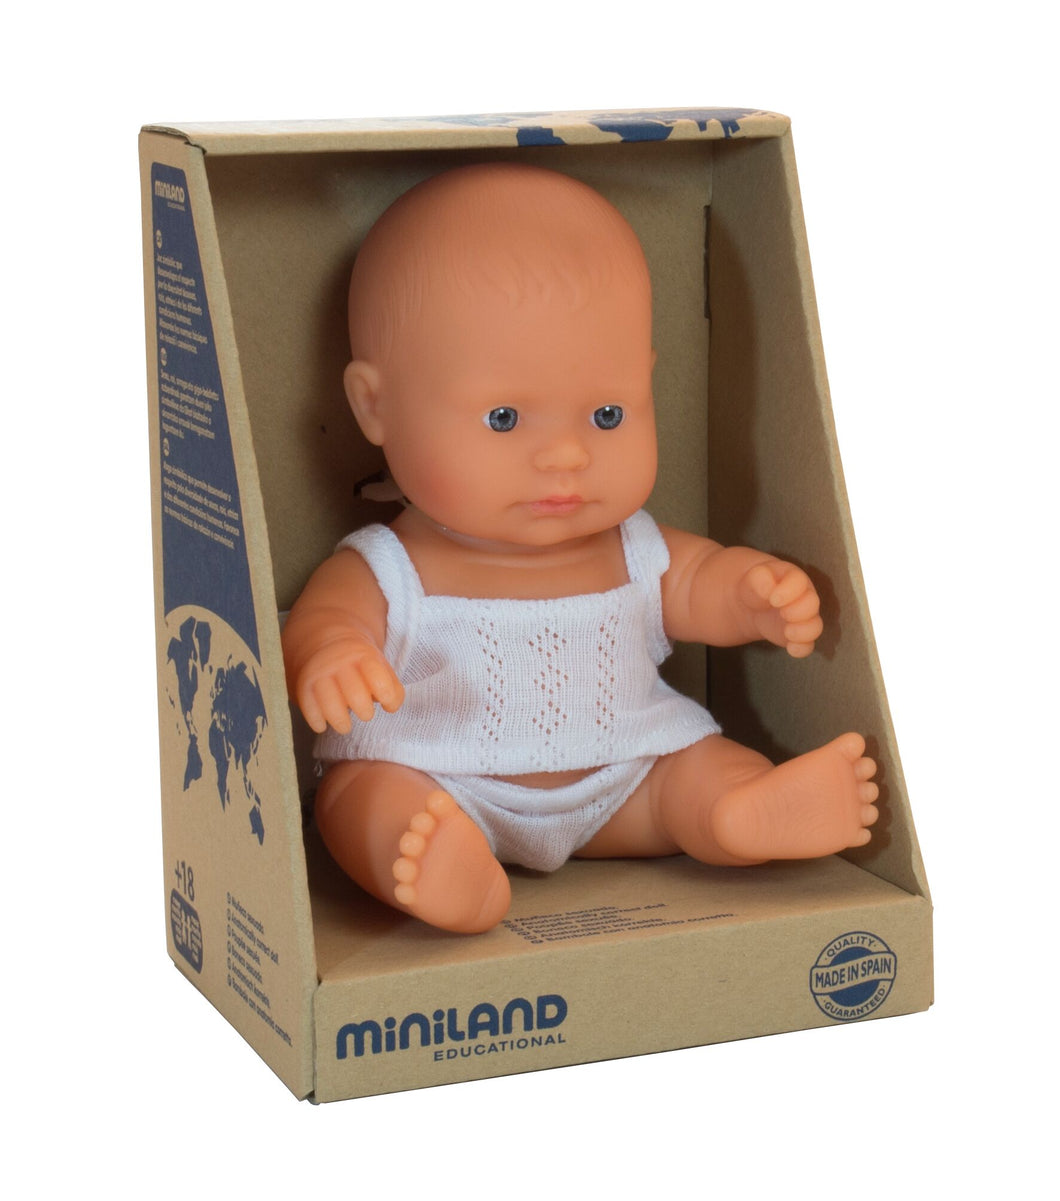 Miniland Doll - Anatomically Correct Baby, Caucasian Boy, 21 cm